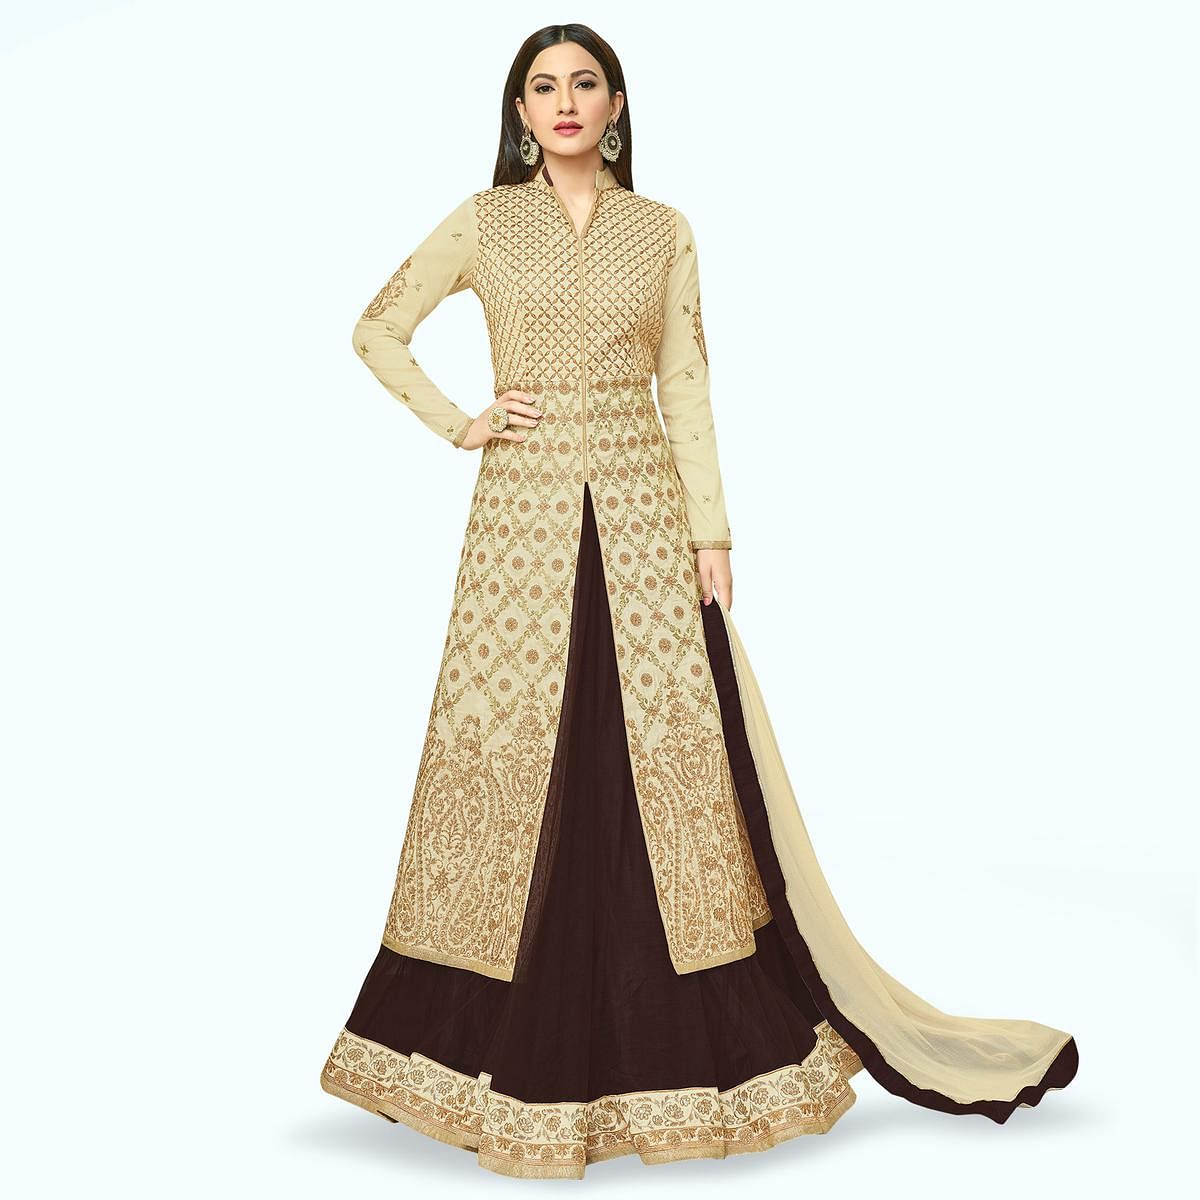 Classy Beige Colored Partywear Embroidered Mulberry Silk Lehenga Kameez